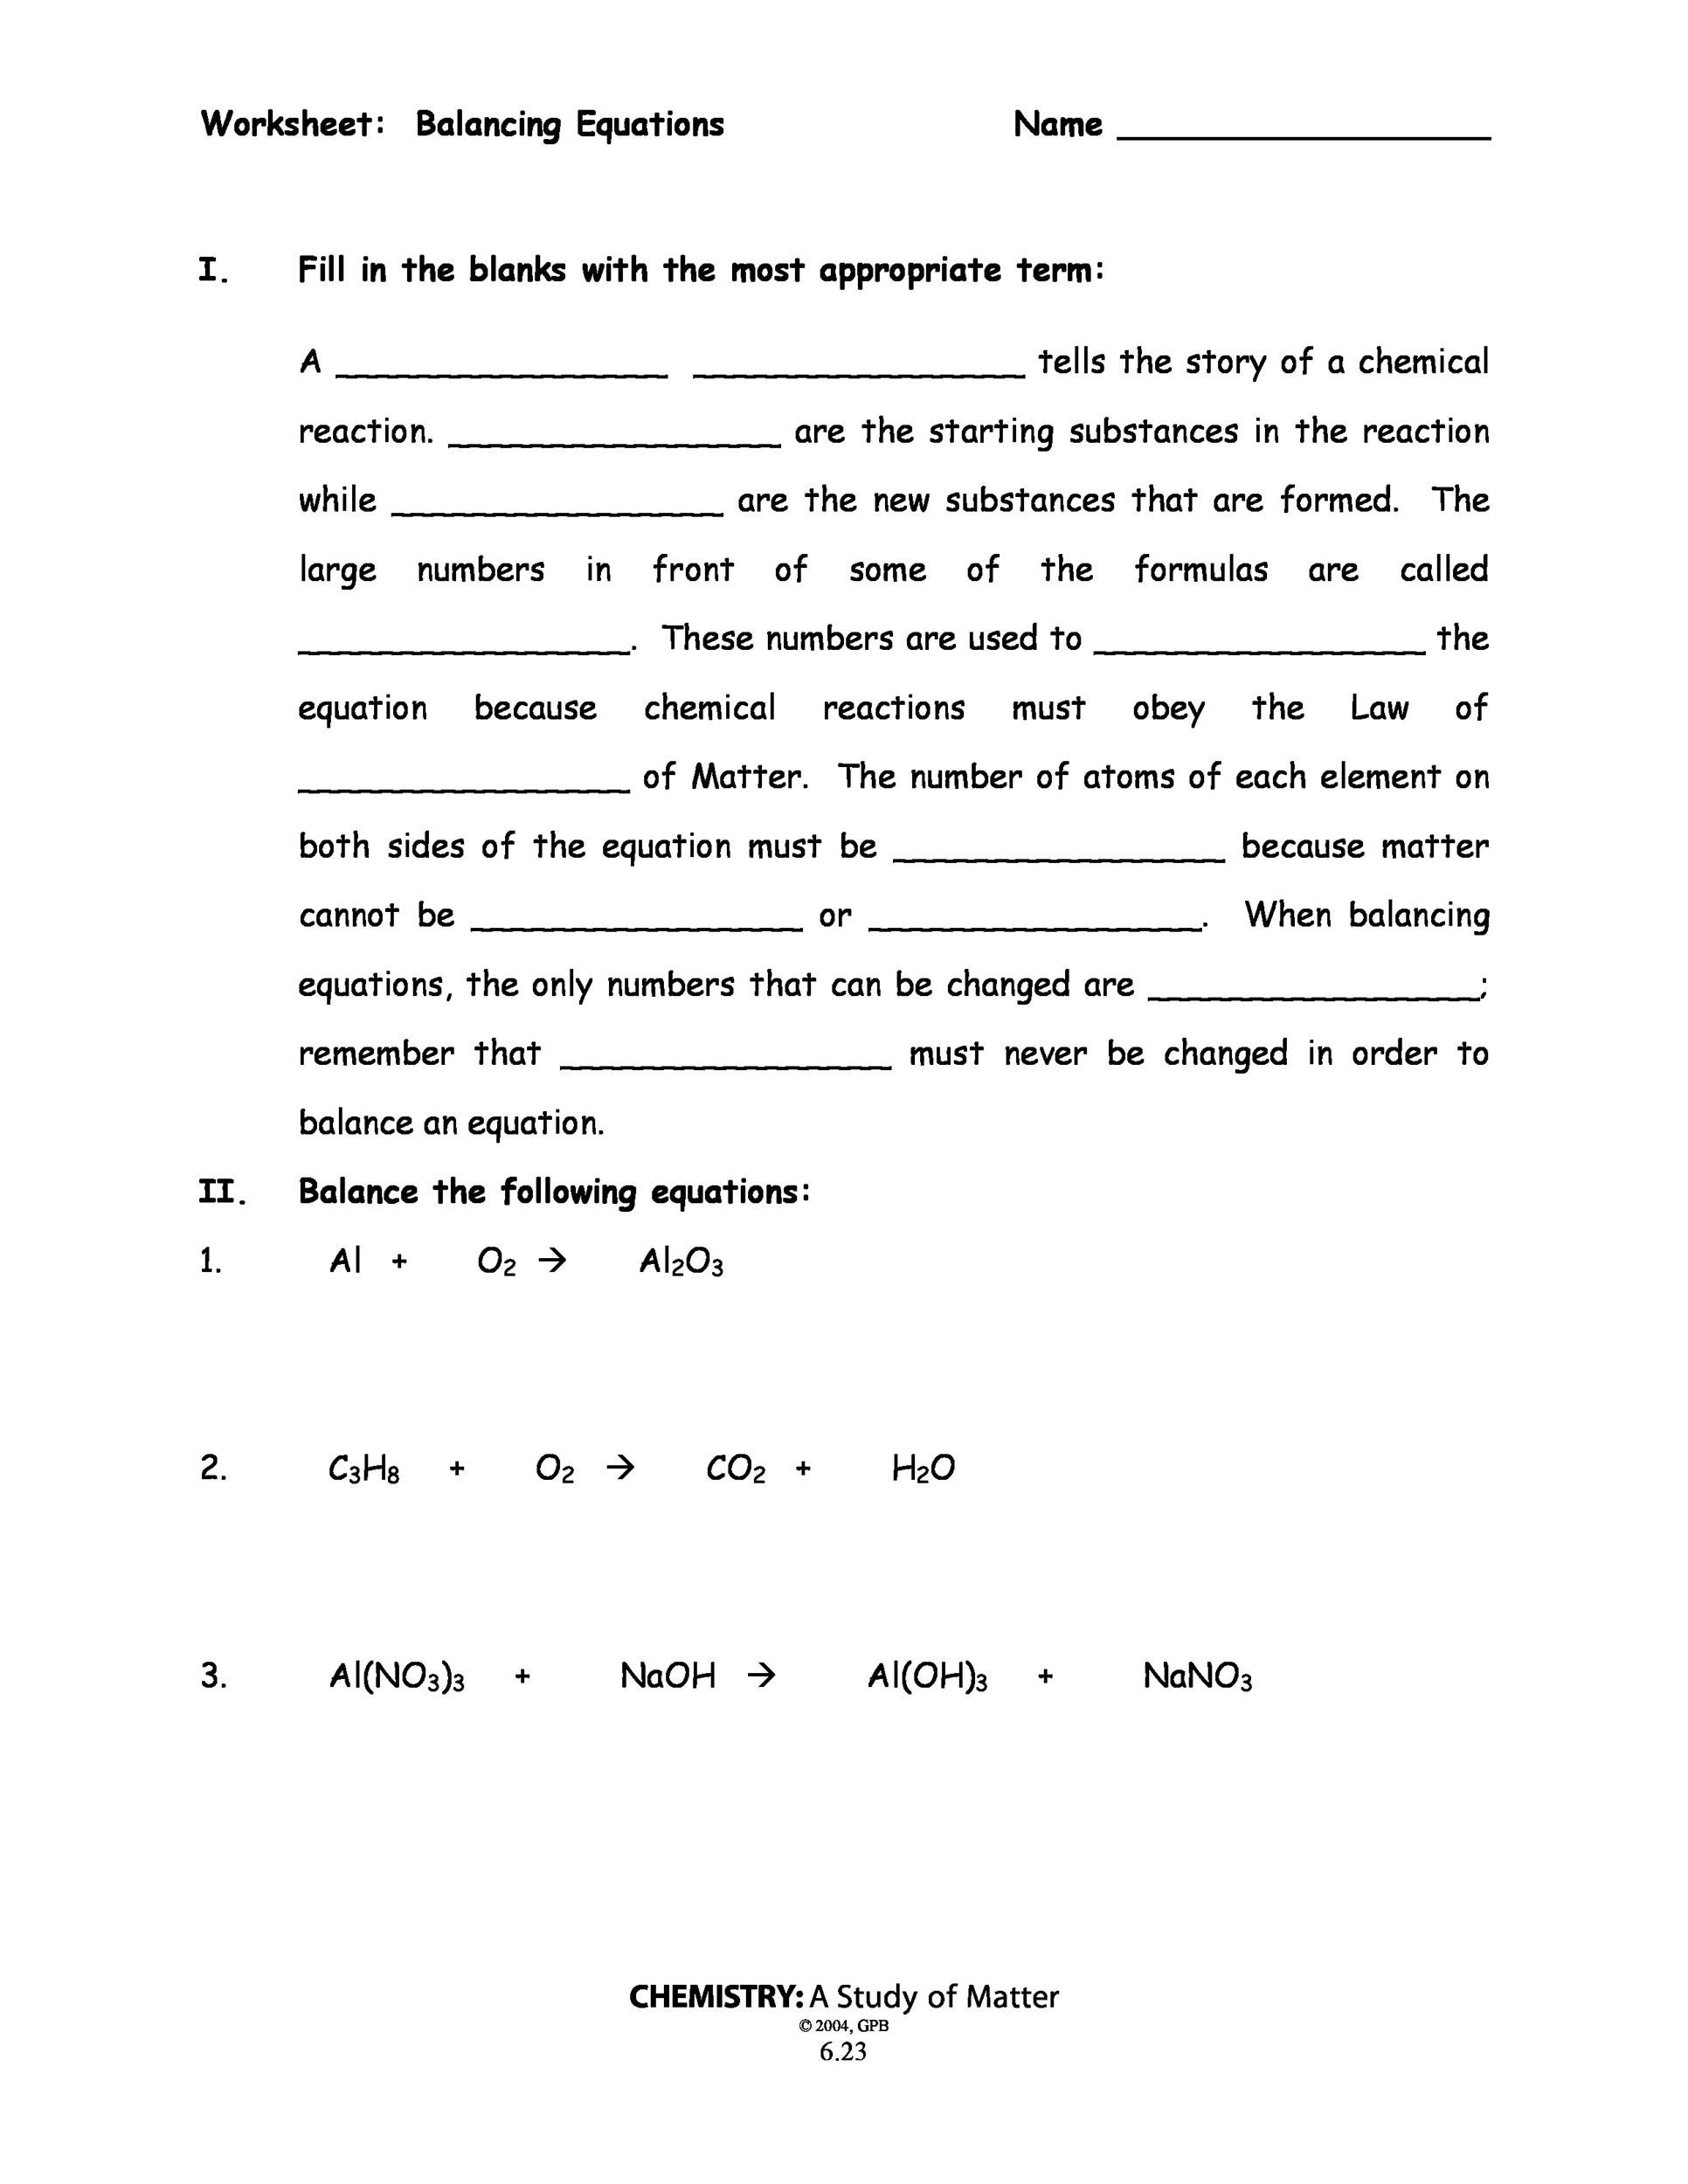 Balancing Chemical Equations Worksheet 2 Answers Delibertad – Balancing Equations Worksheet Answer Key